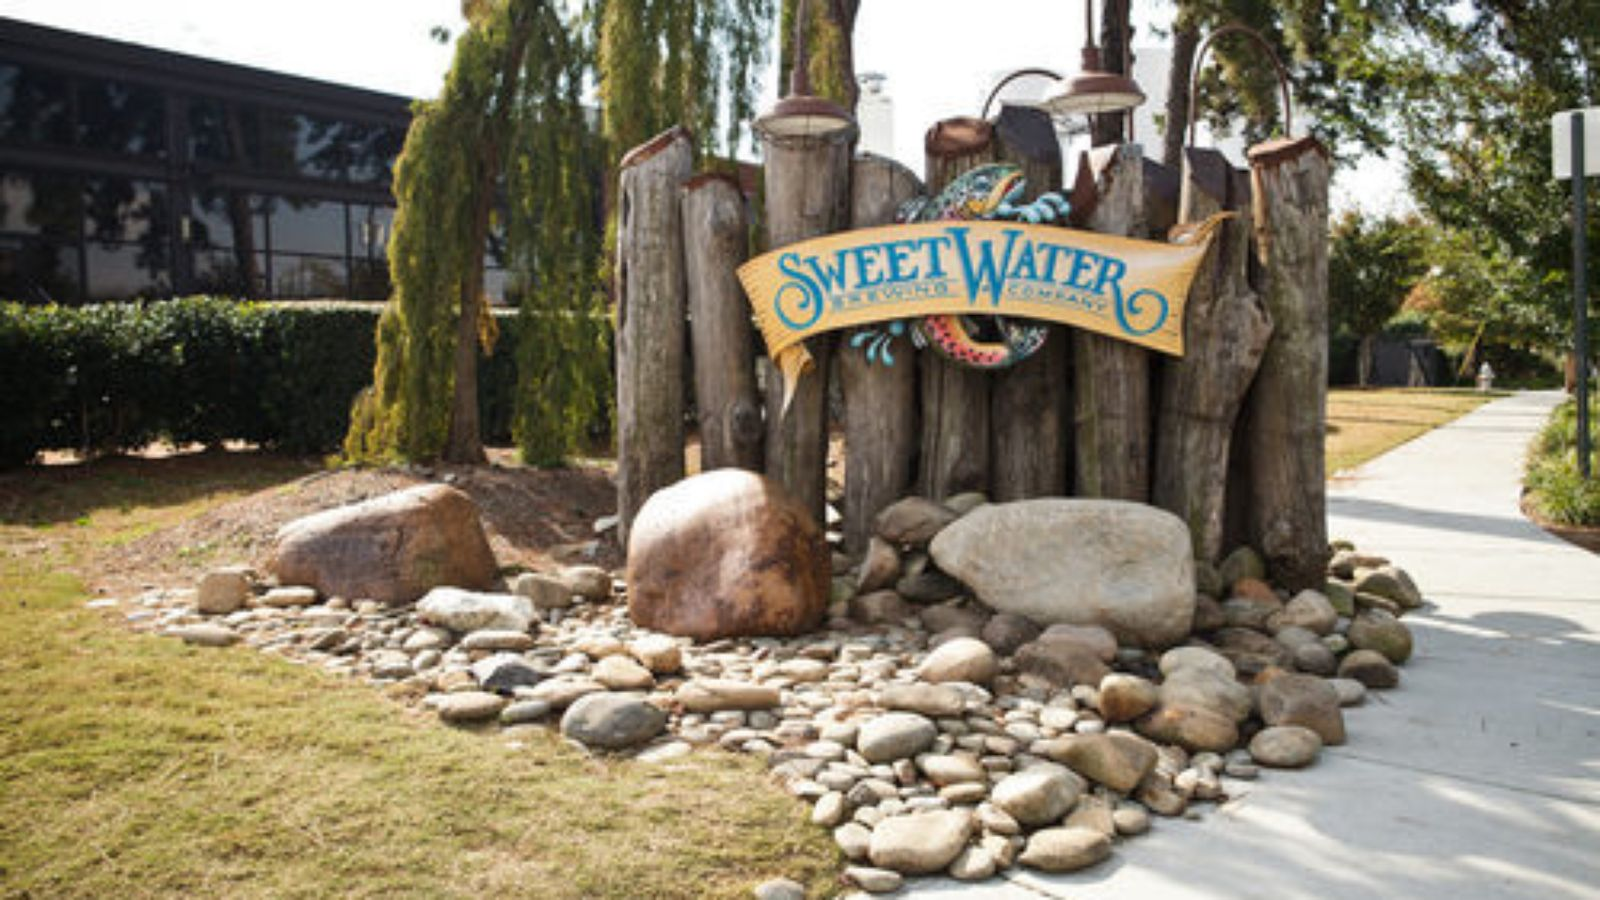 SweetWater Brewing Company.